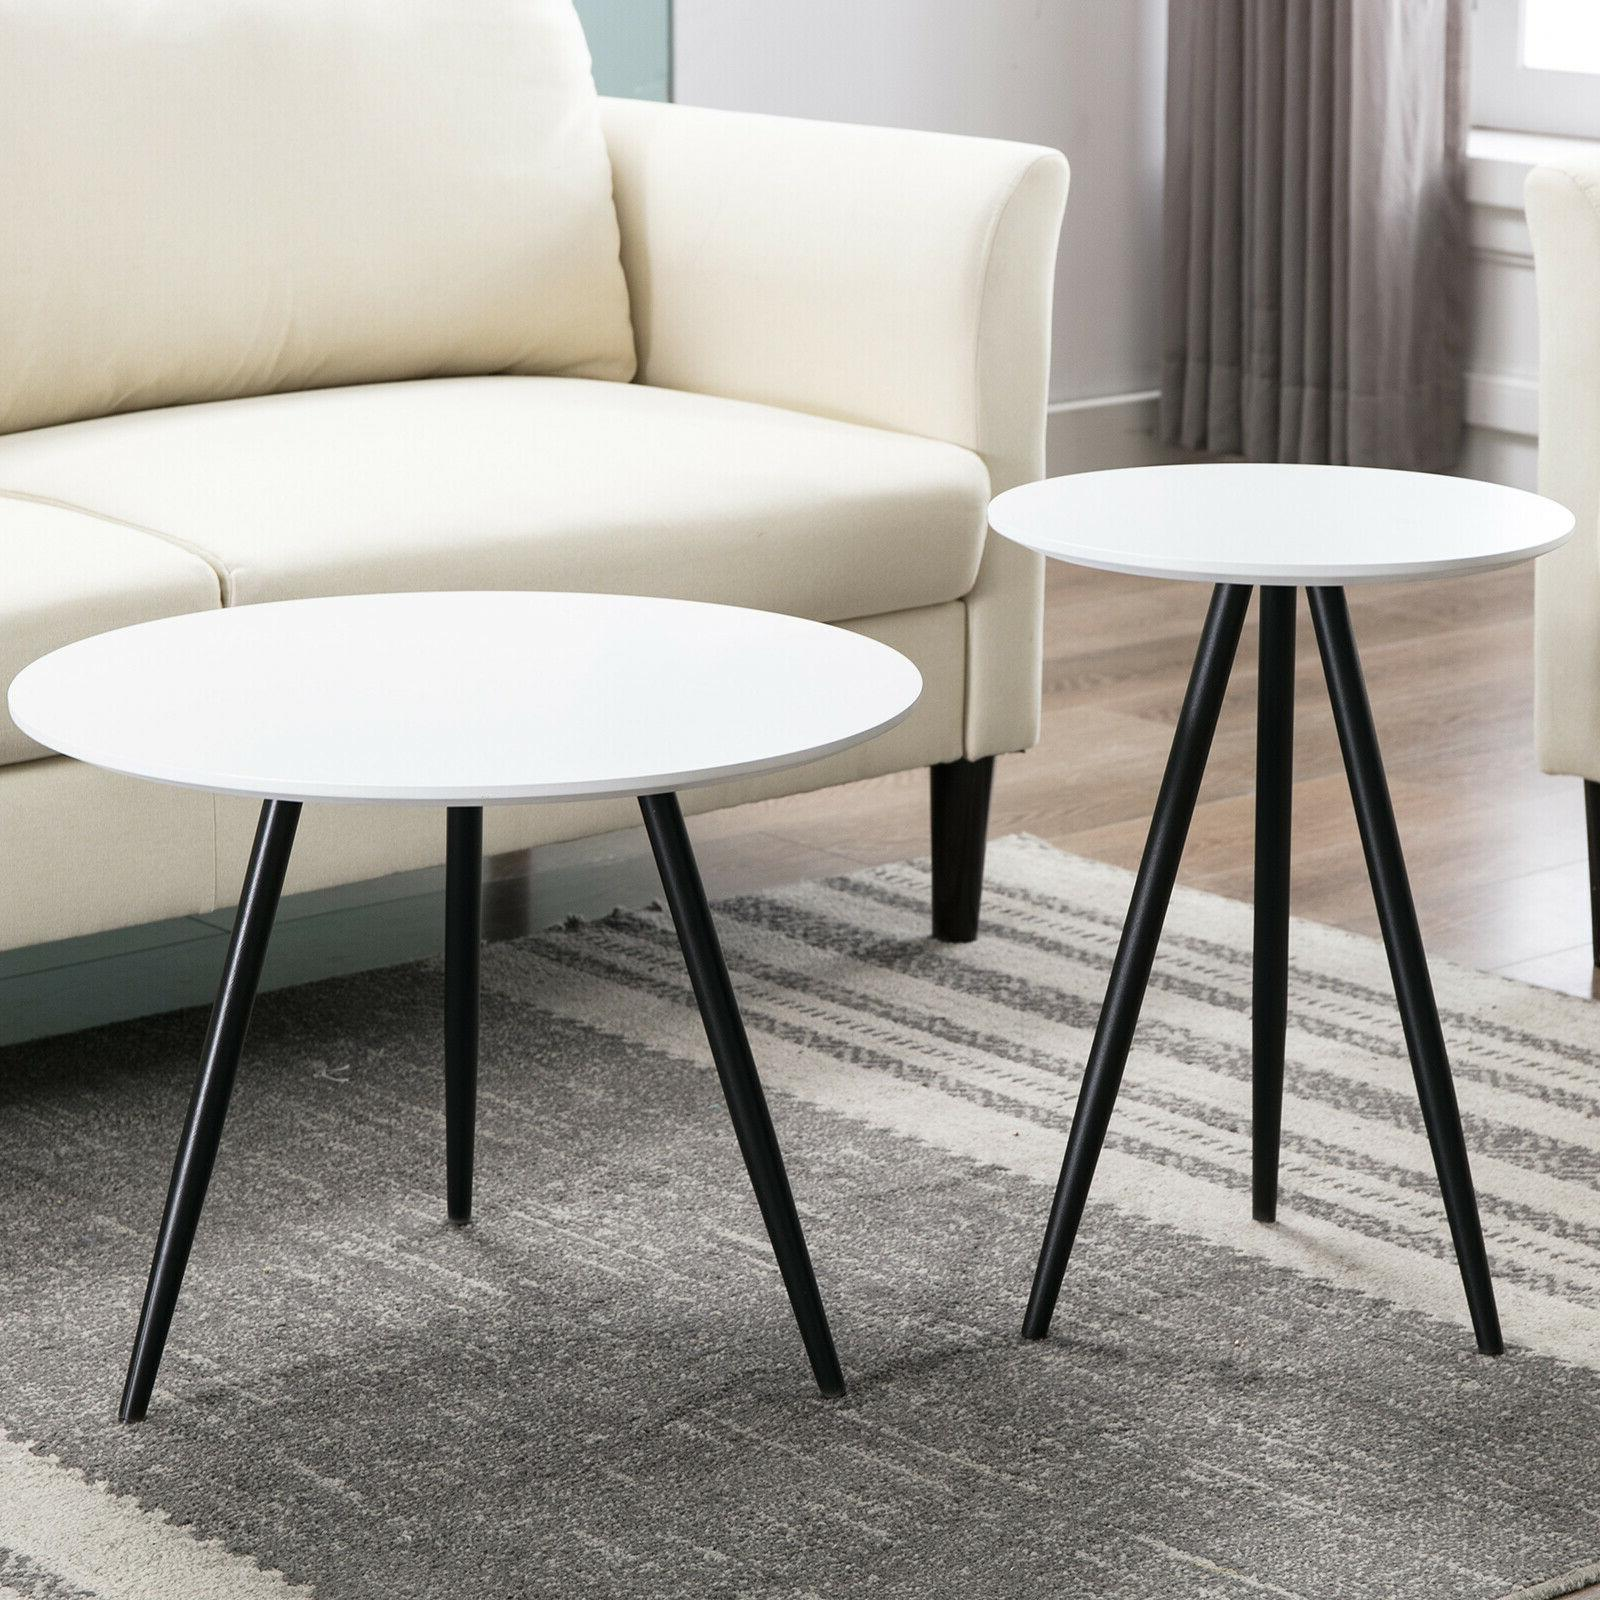 Modern Round Side Table Room